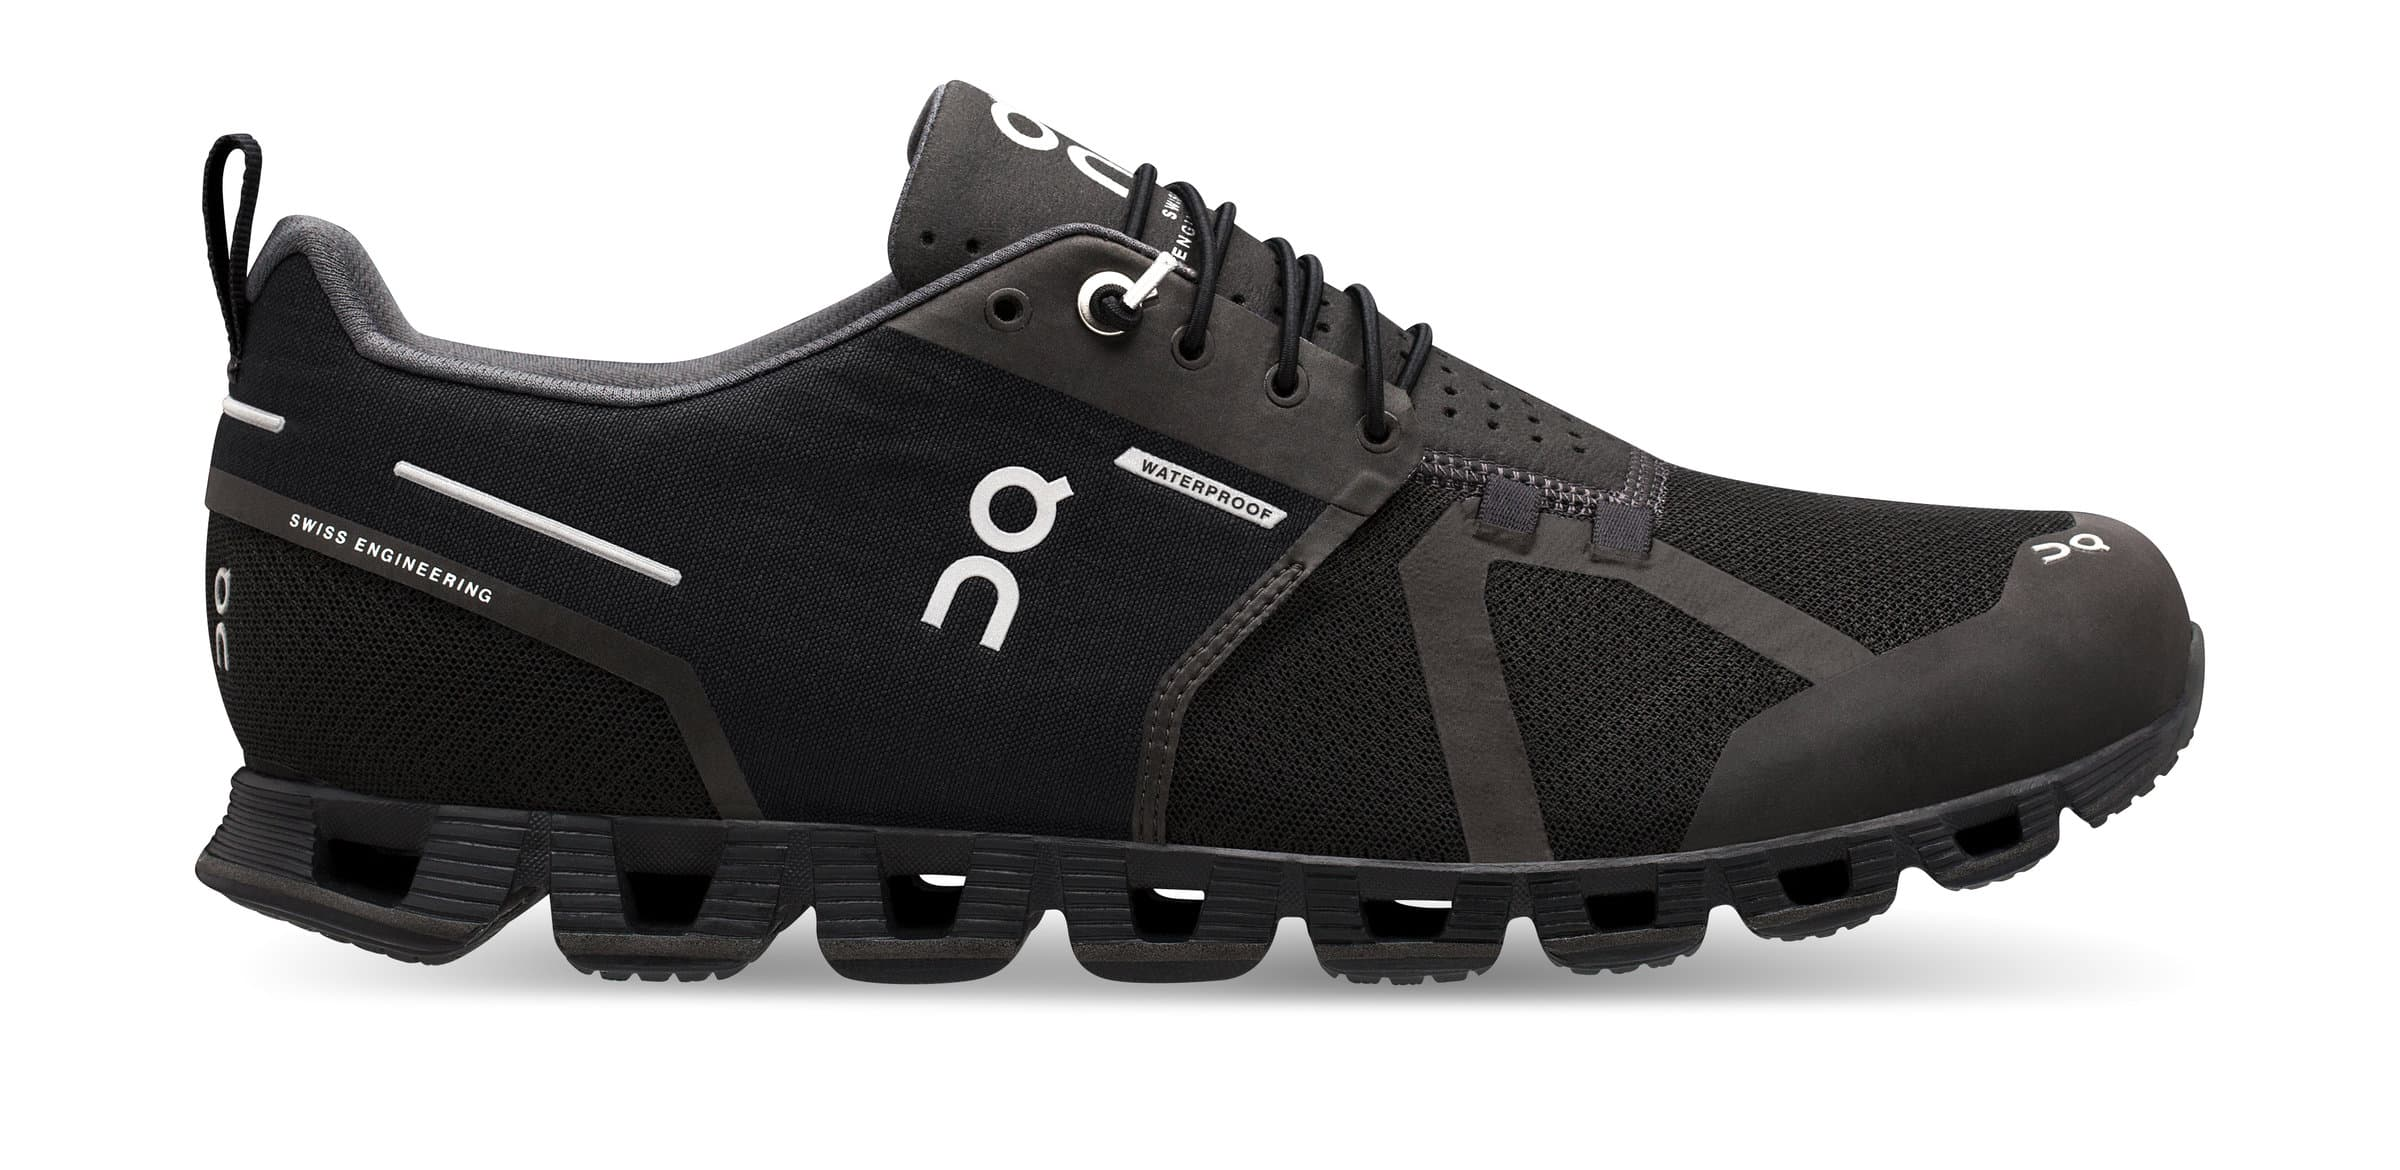 On Cloud Waterproof Chaussures de course pour homme